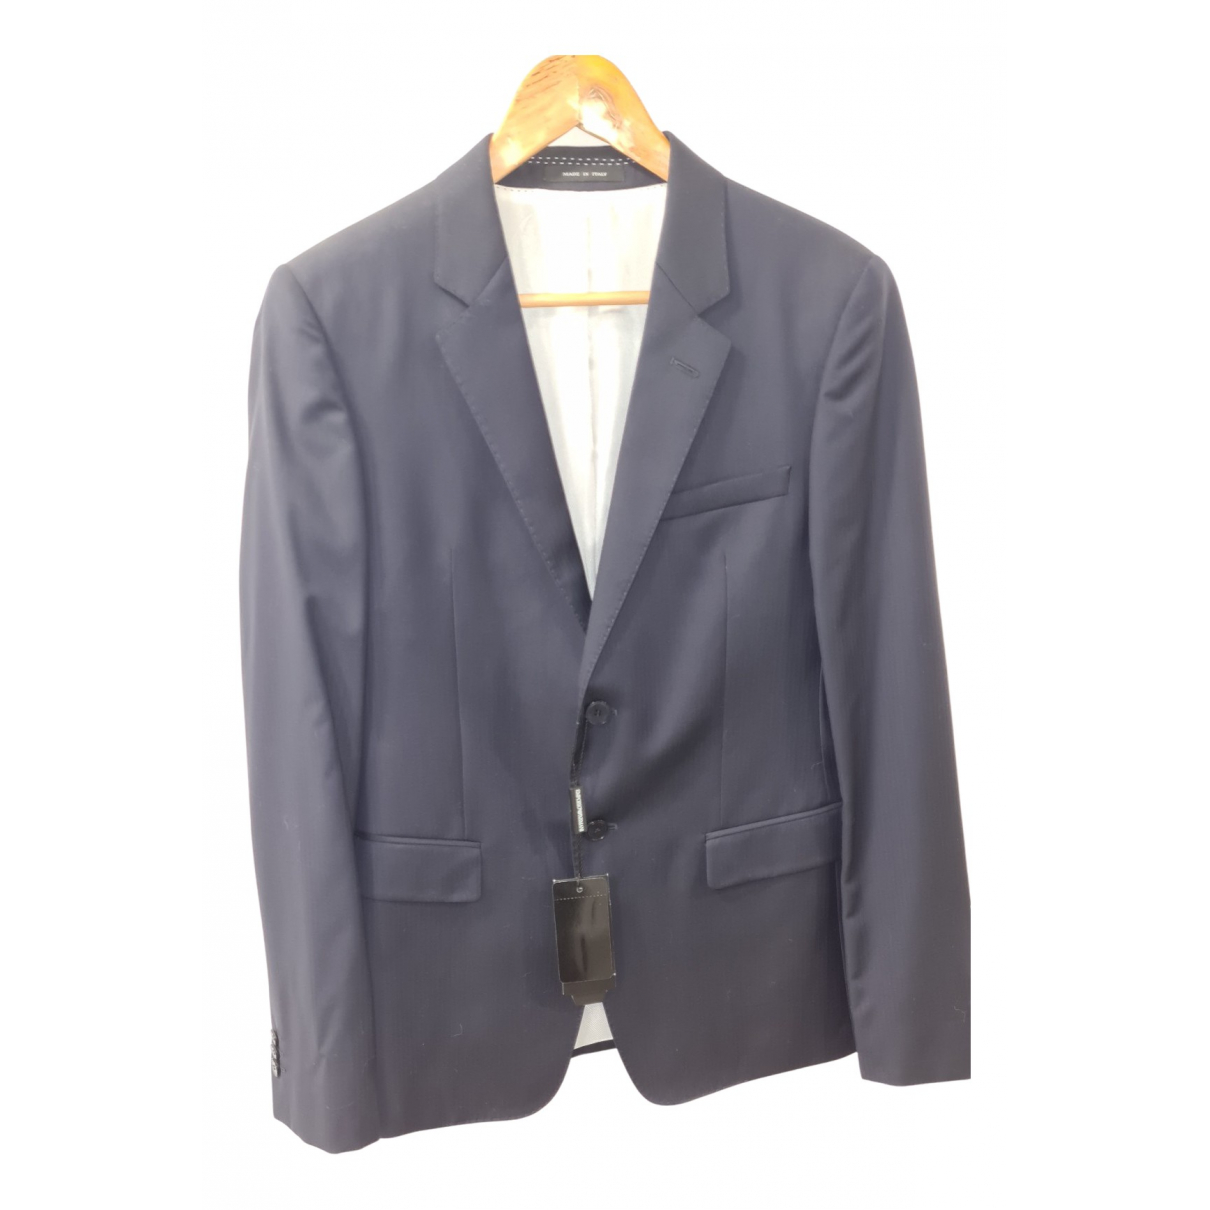 Emporio Armani N Blue Wool Suits for Men 46 IT